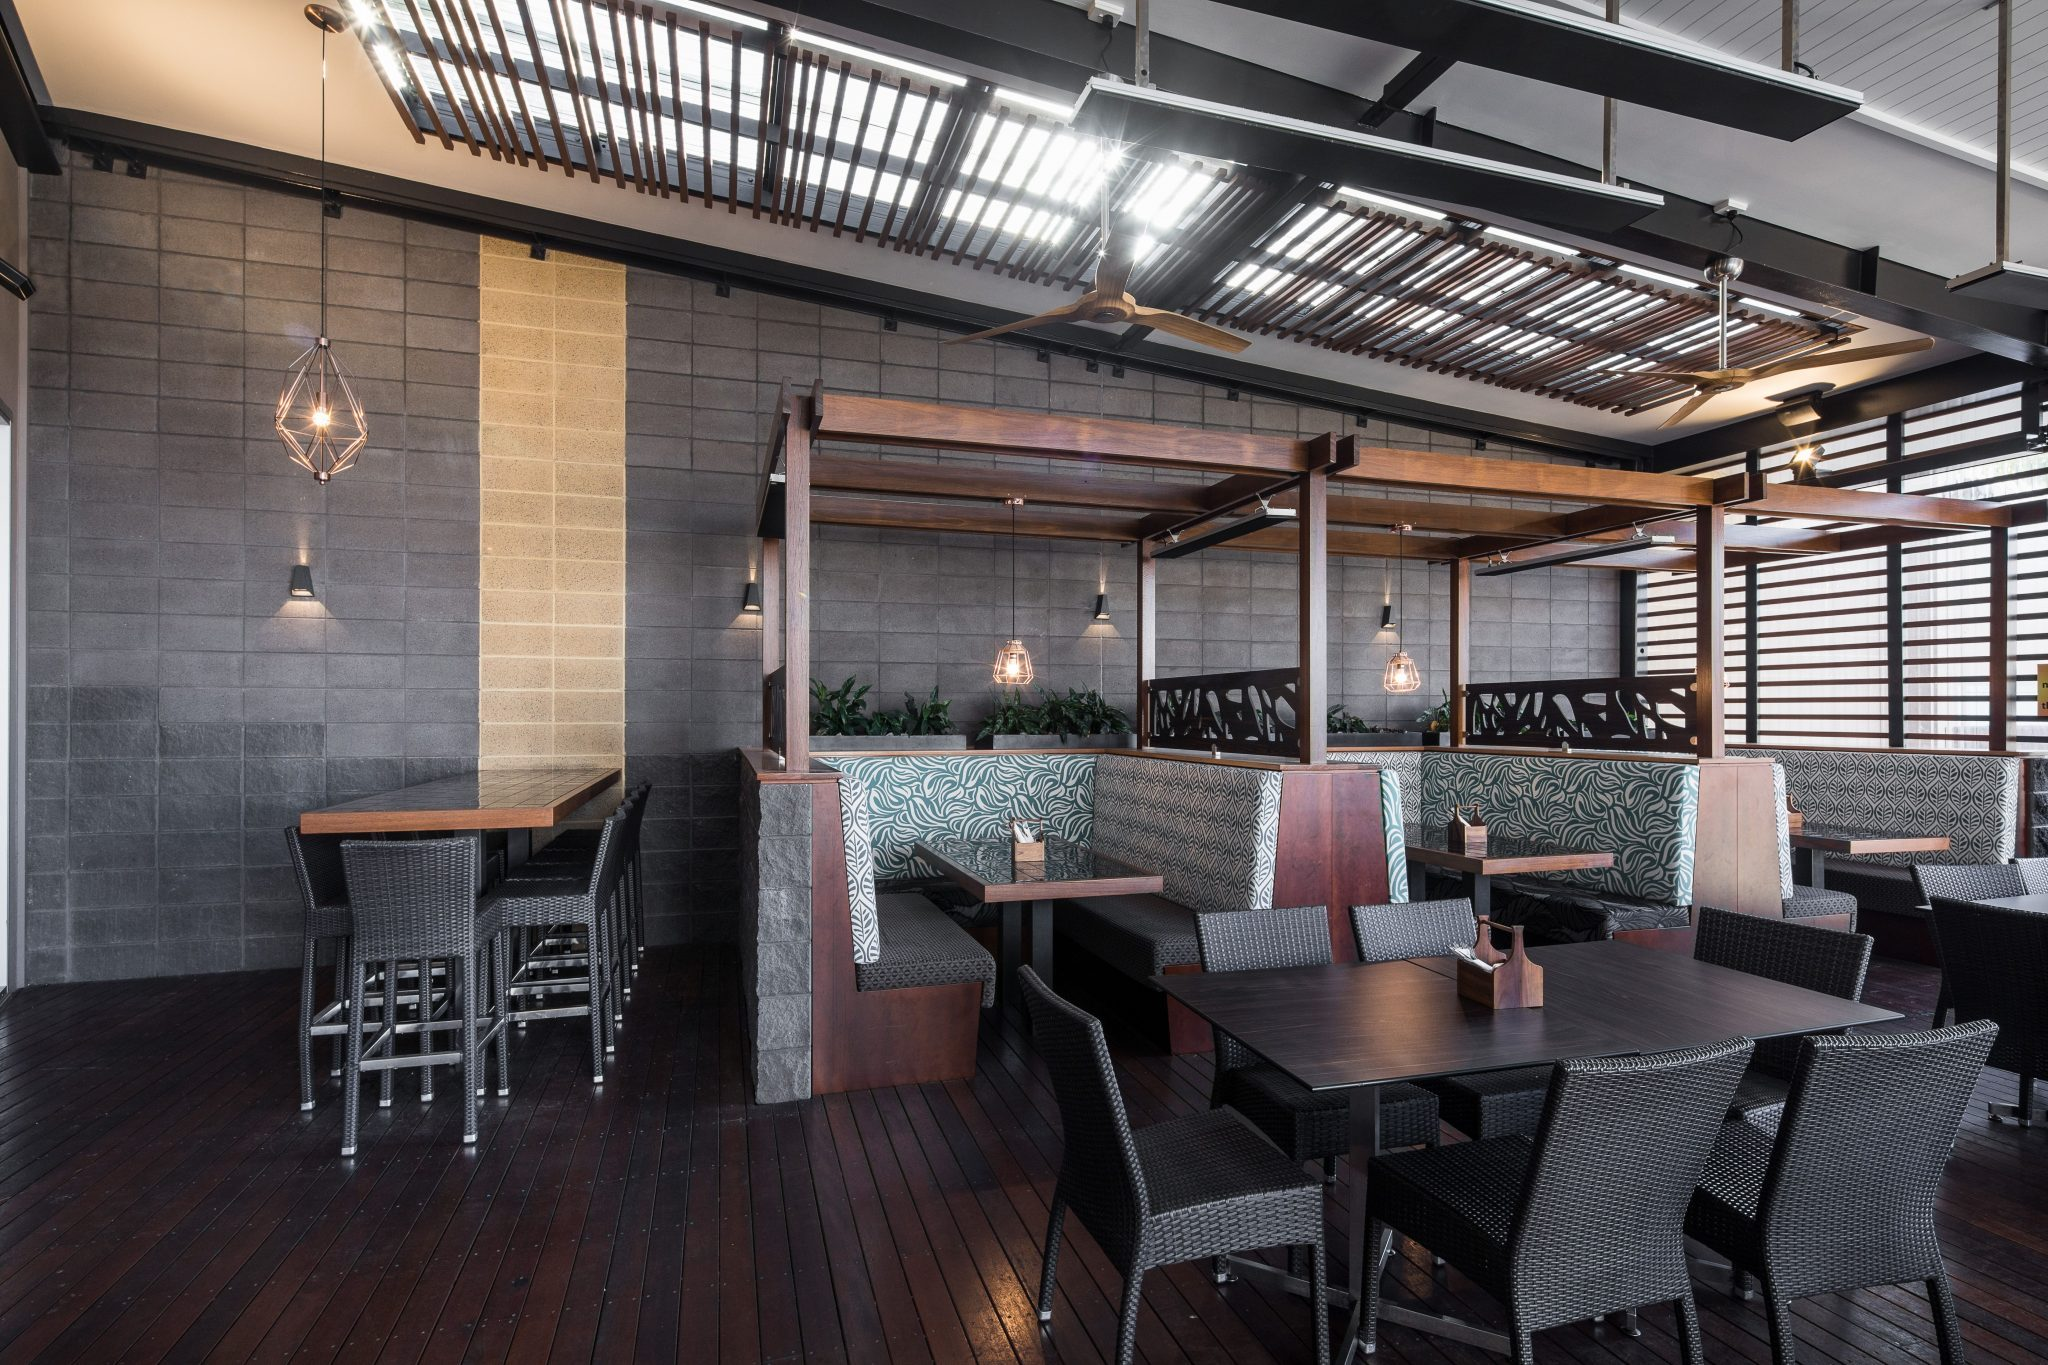 Refurbished_restaurant_setting_at_the_Golden_Beach_Tavern_incorporating_stunning_Architectural_Coloured_Masonry_feature_walls